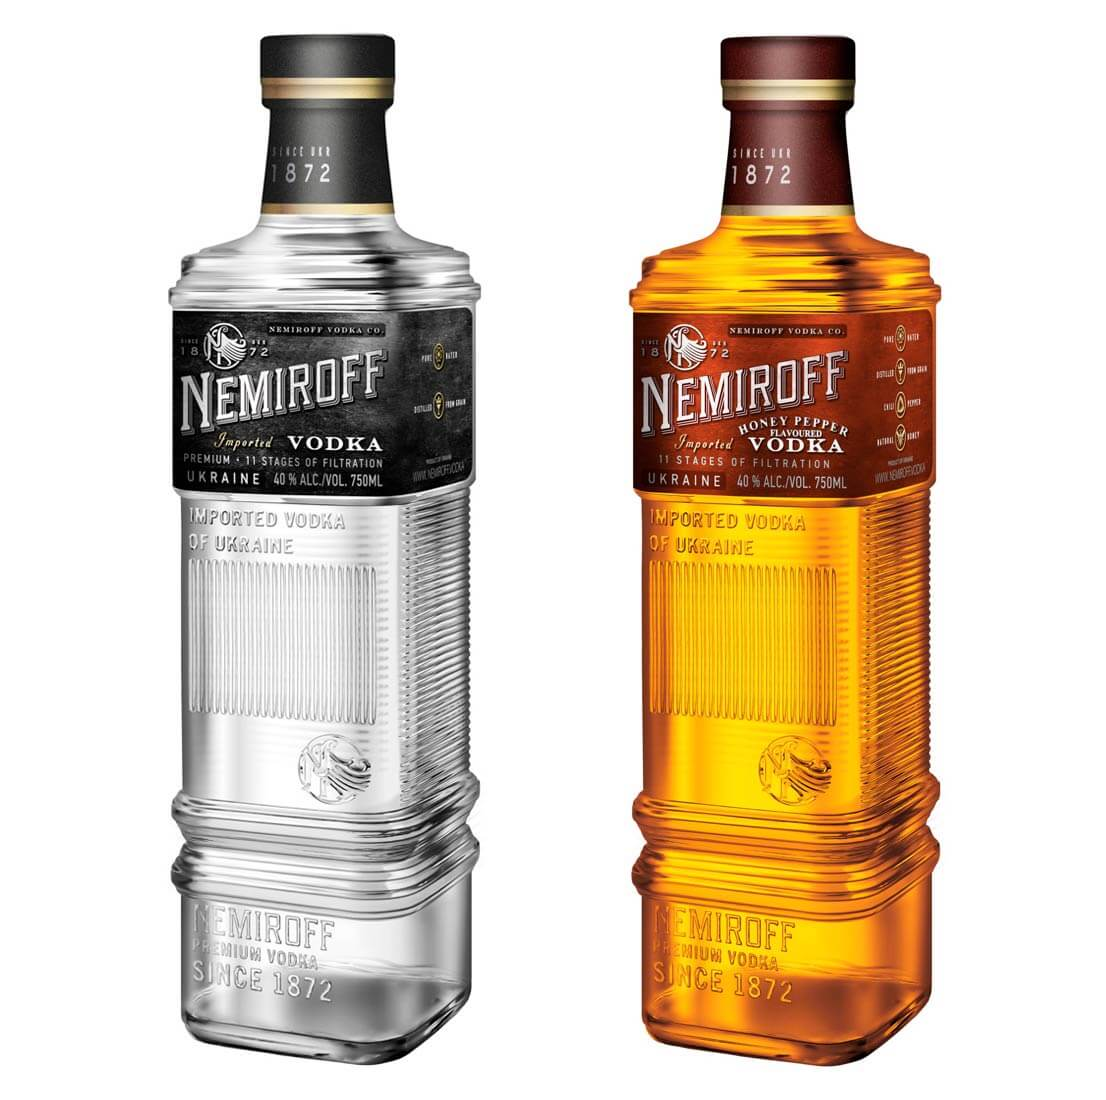 Nemiroff Original and Honey Pepper Vodka, bottles on white